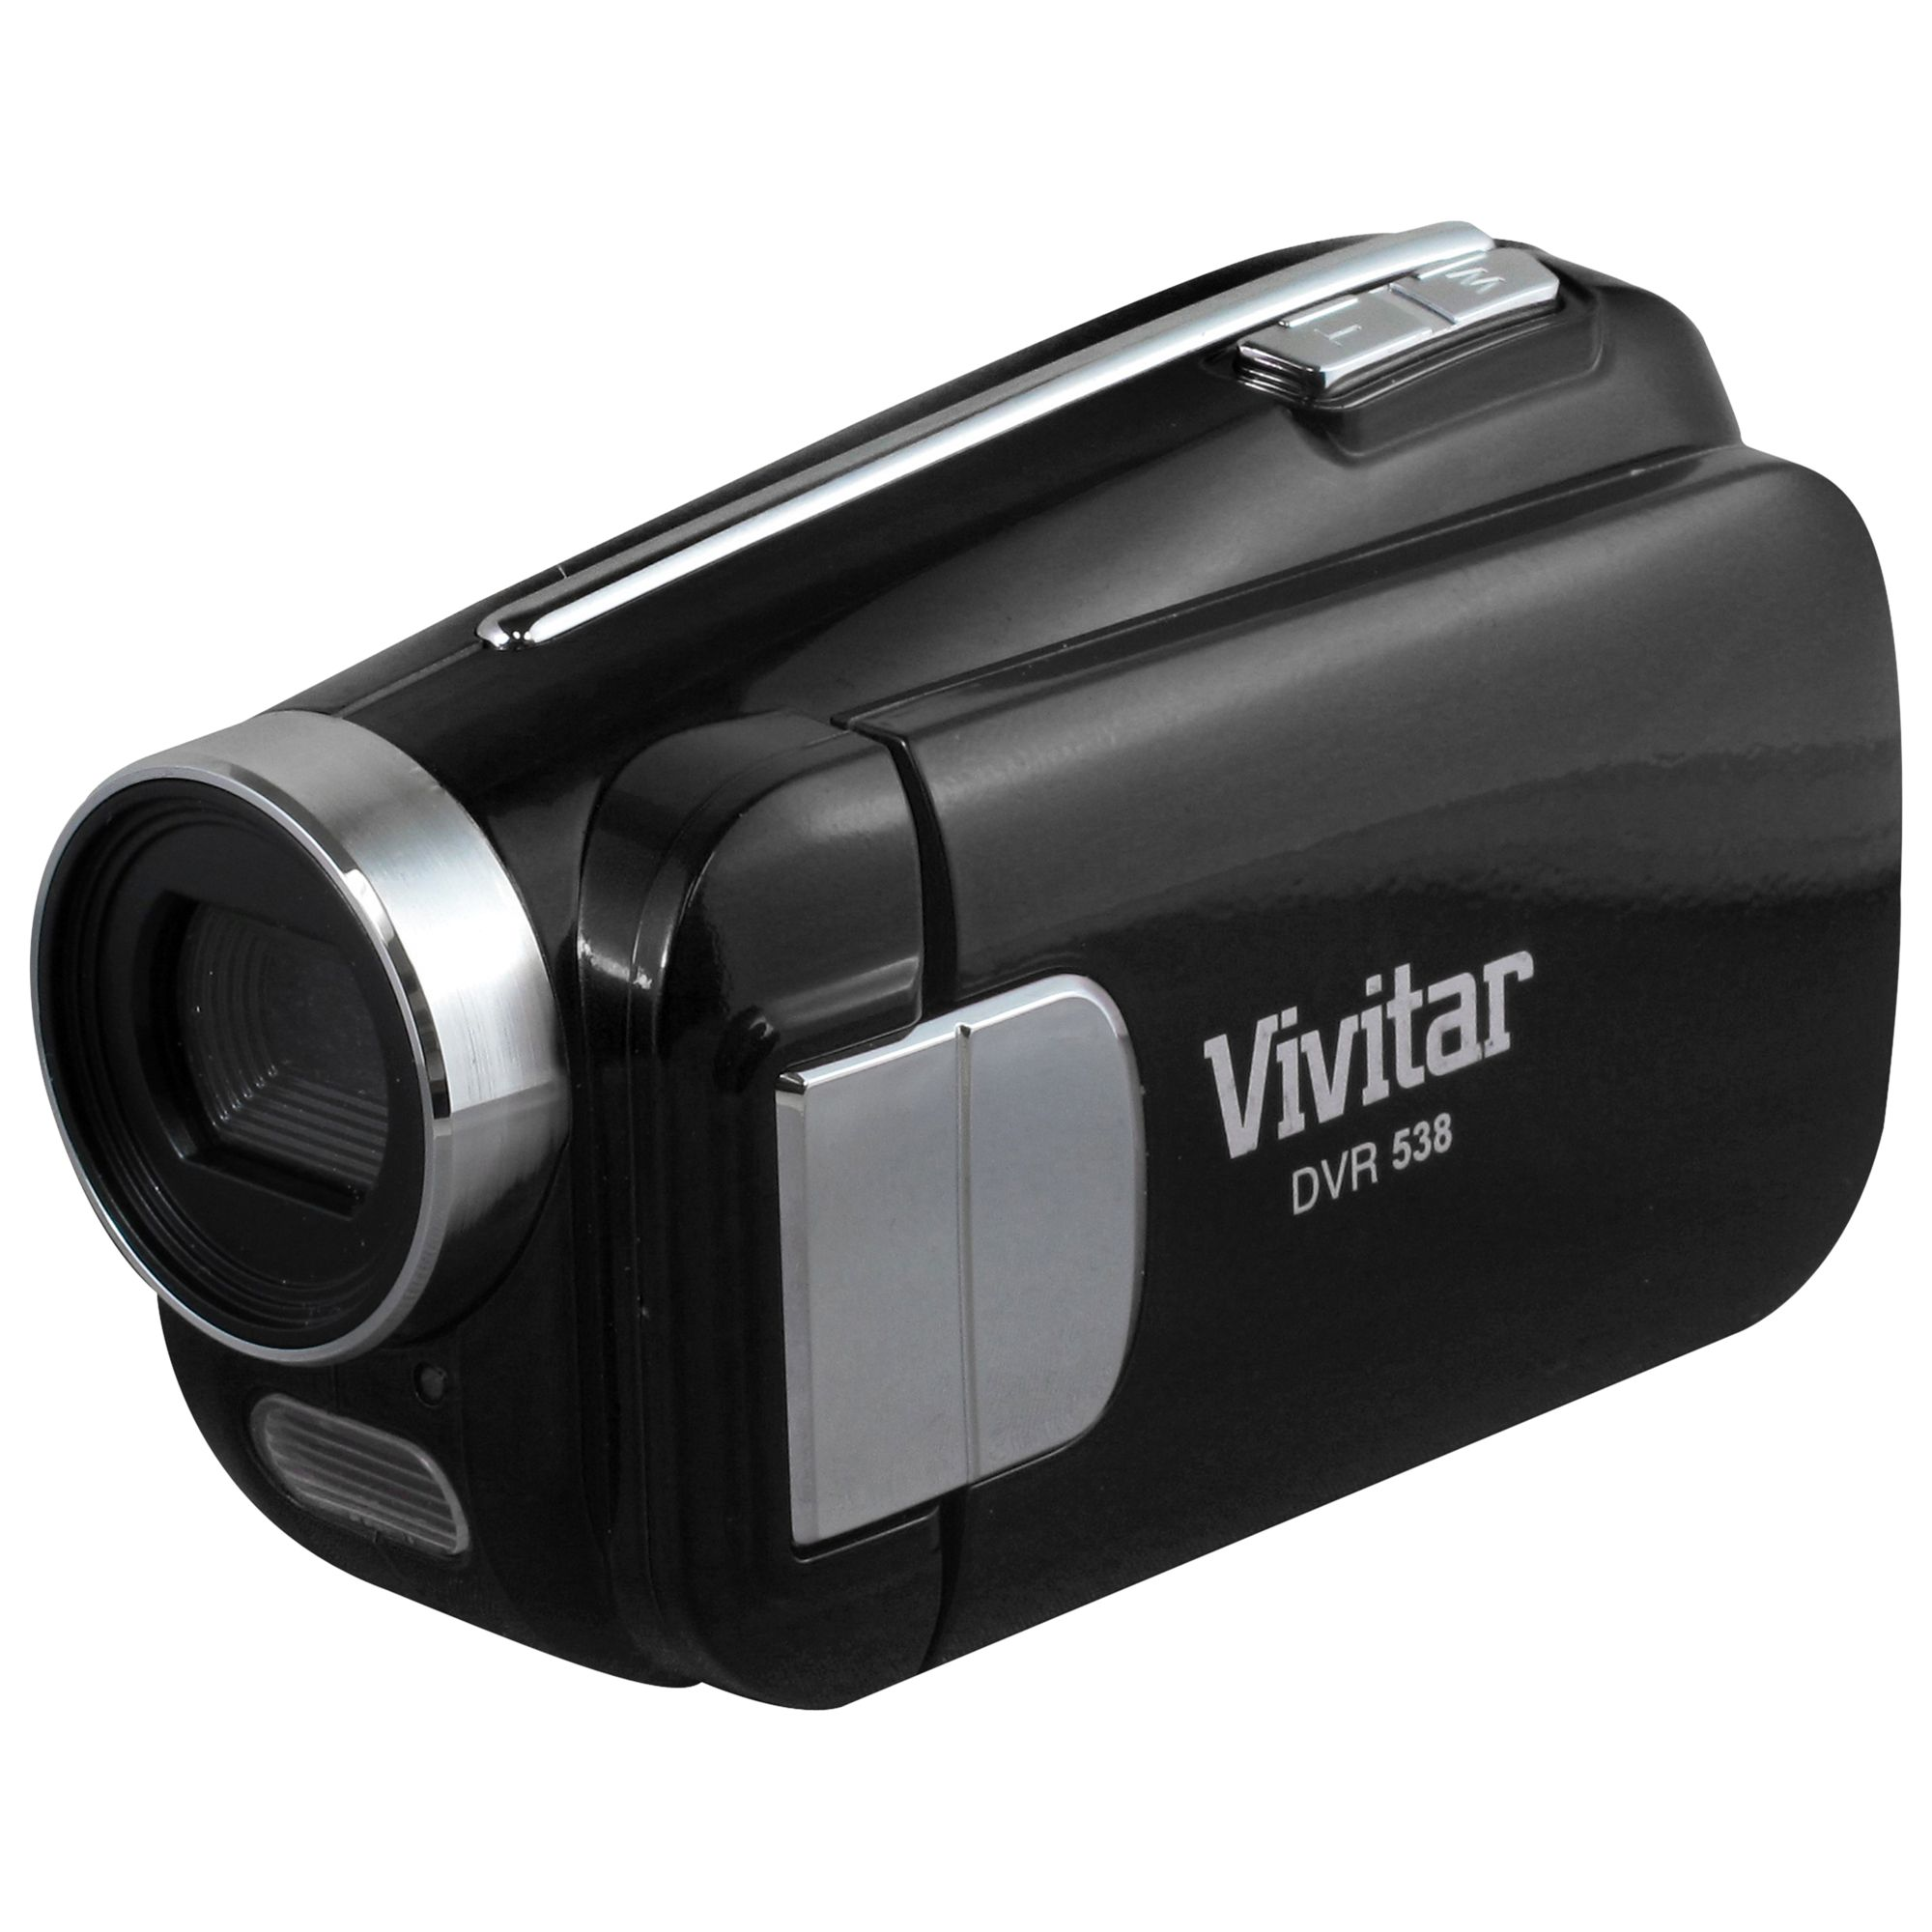 Vivitar DVR 638 Camcorder, 16GB, 2.0